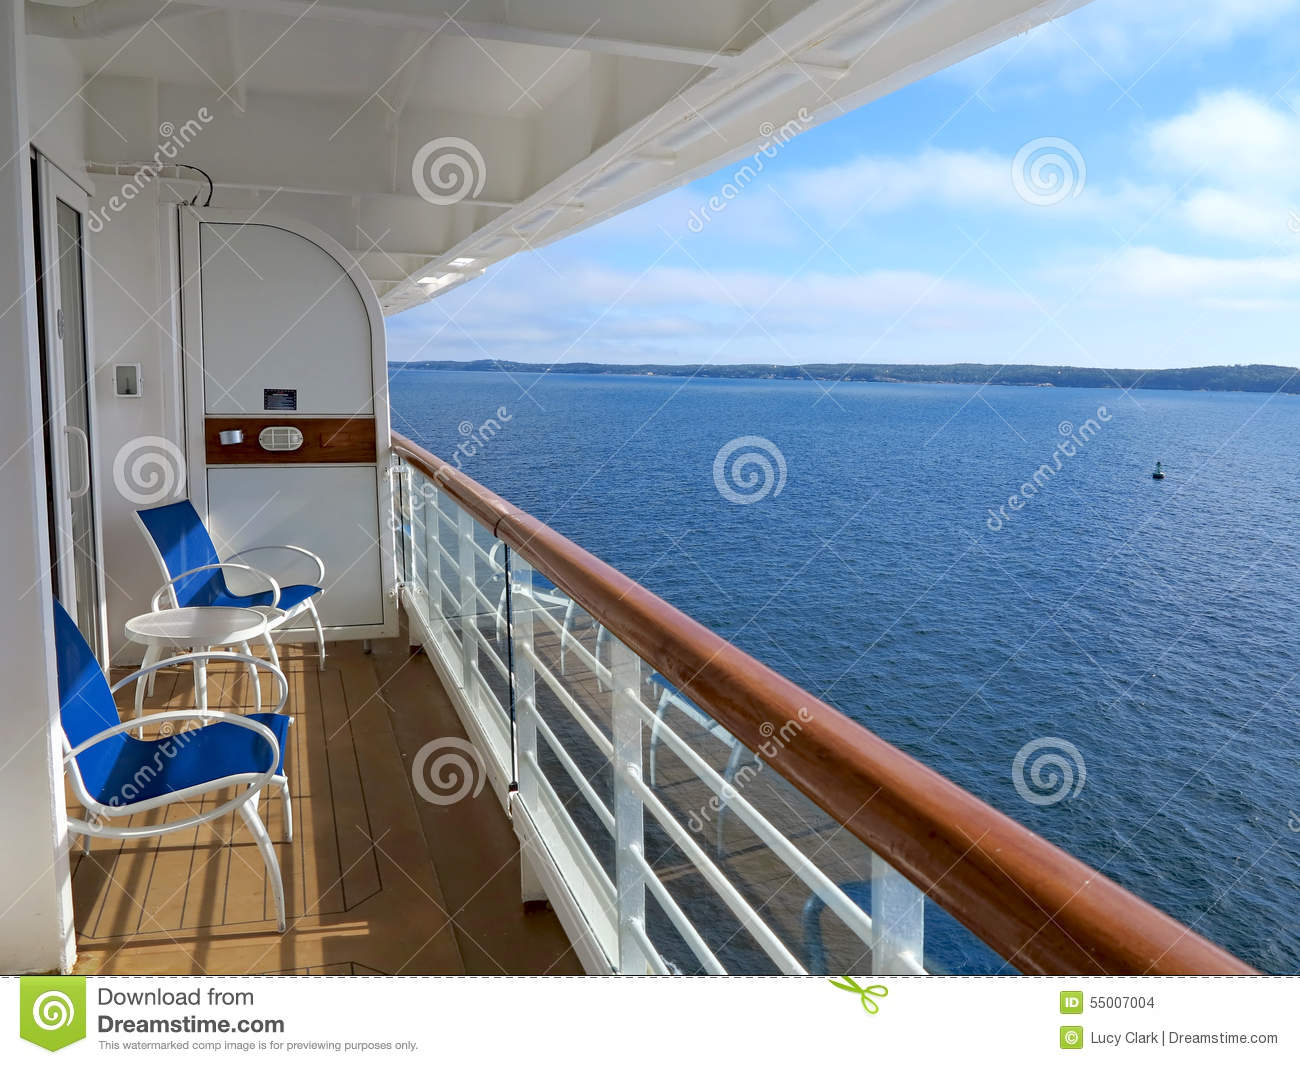 Cruise ship view stock photo image 55007004 for Cruise ship balcony view